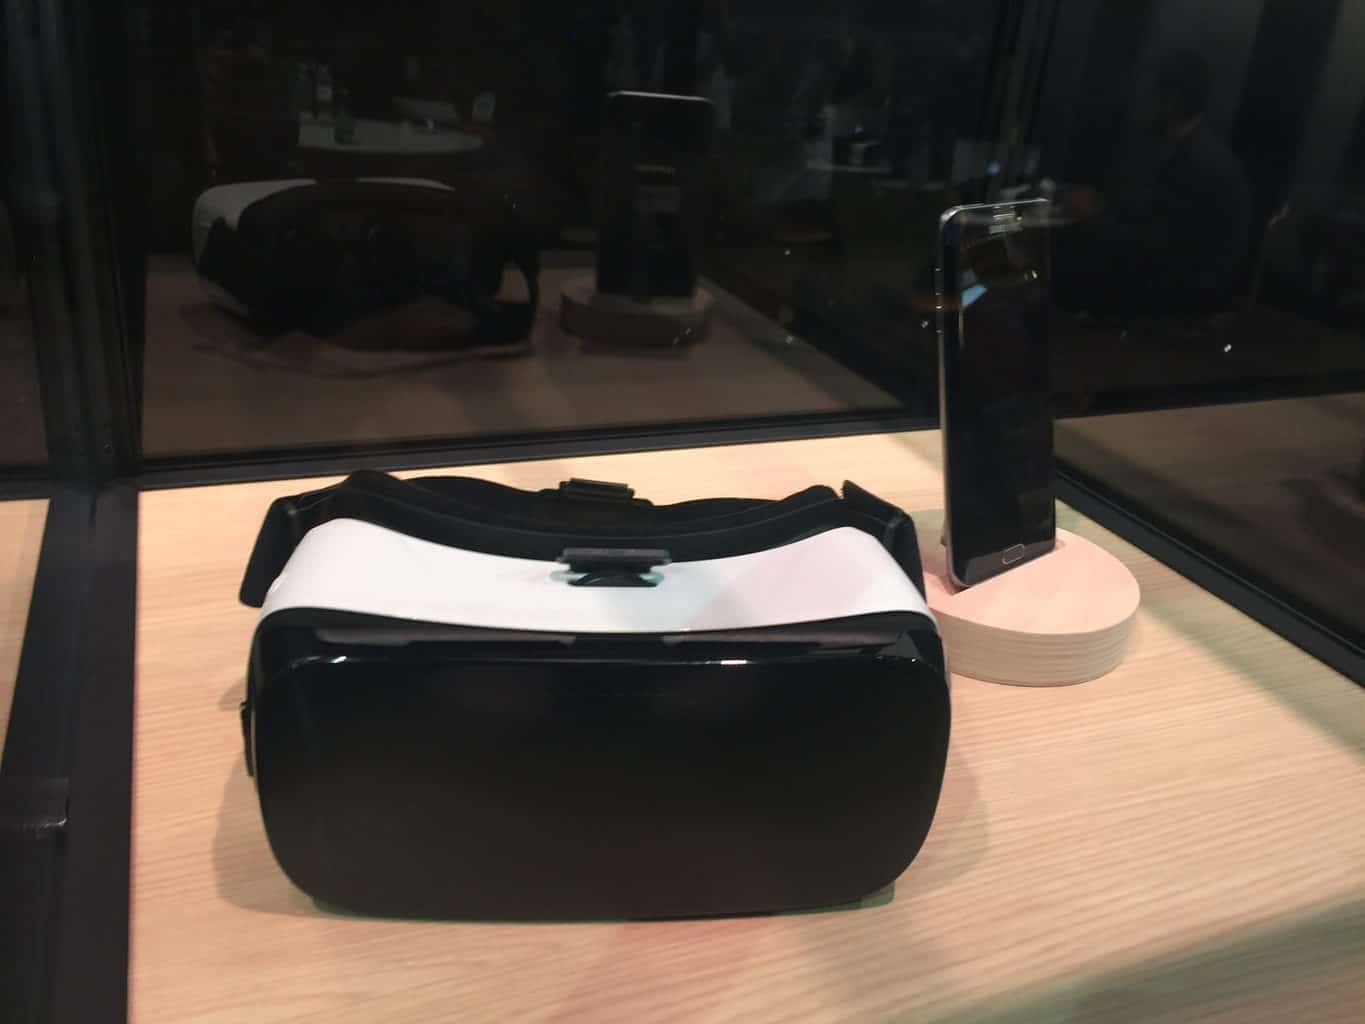 Facebook Inc (FB) Oculus Rift